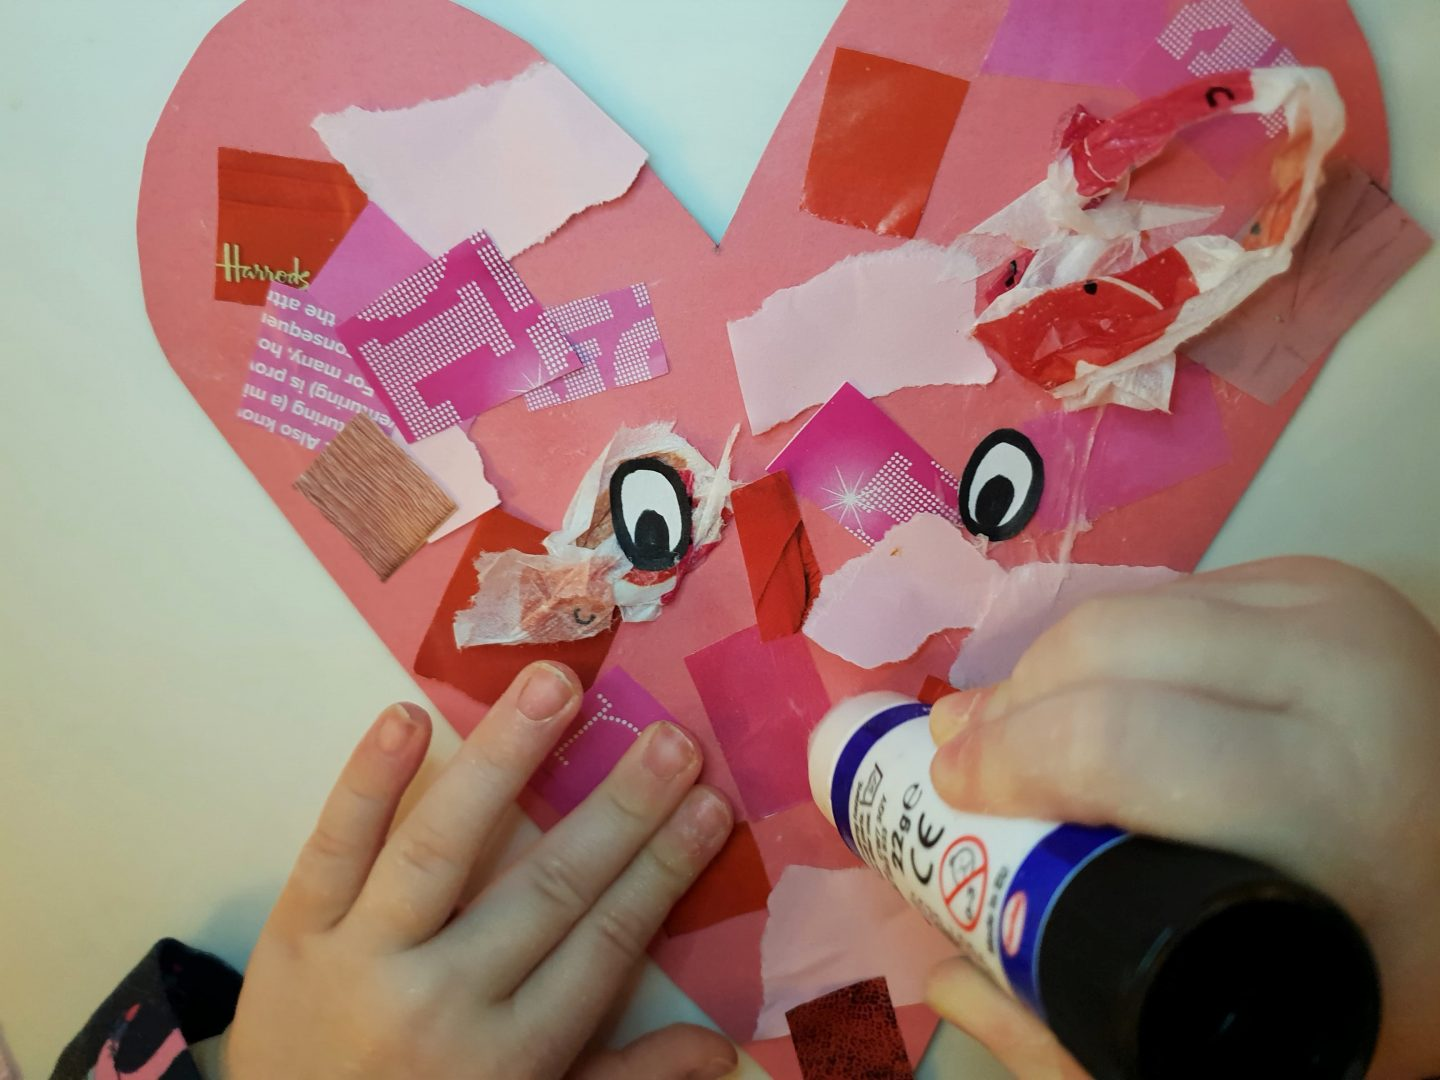 Toddler gluing face onto Valentine's heart craft